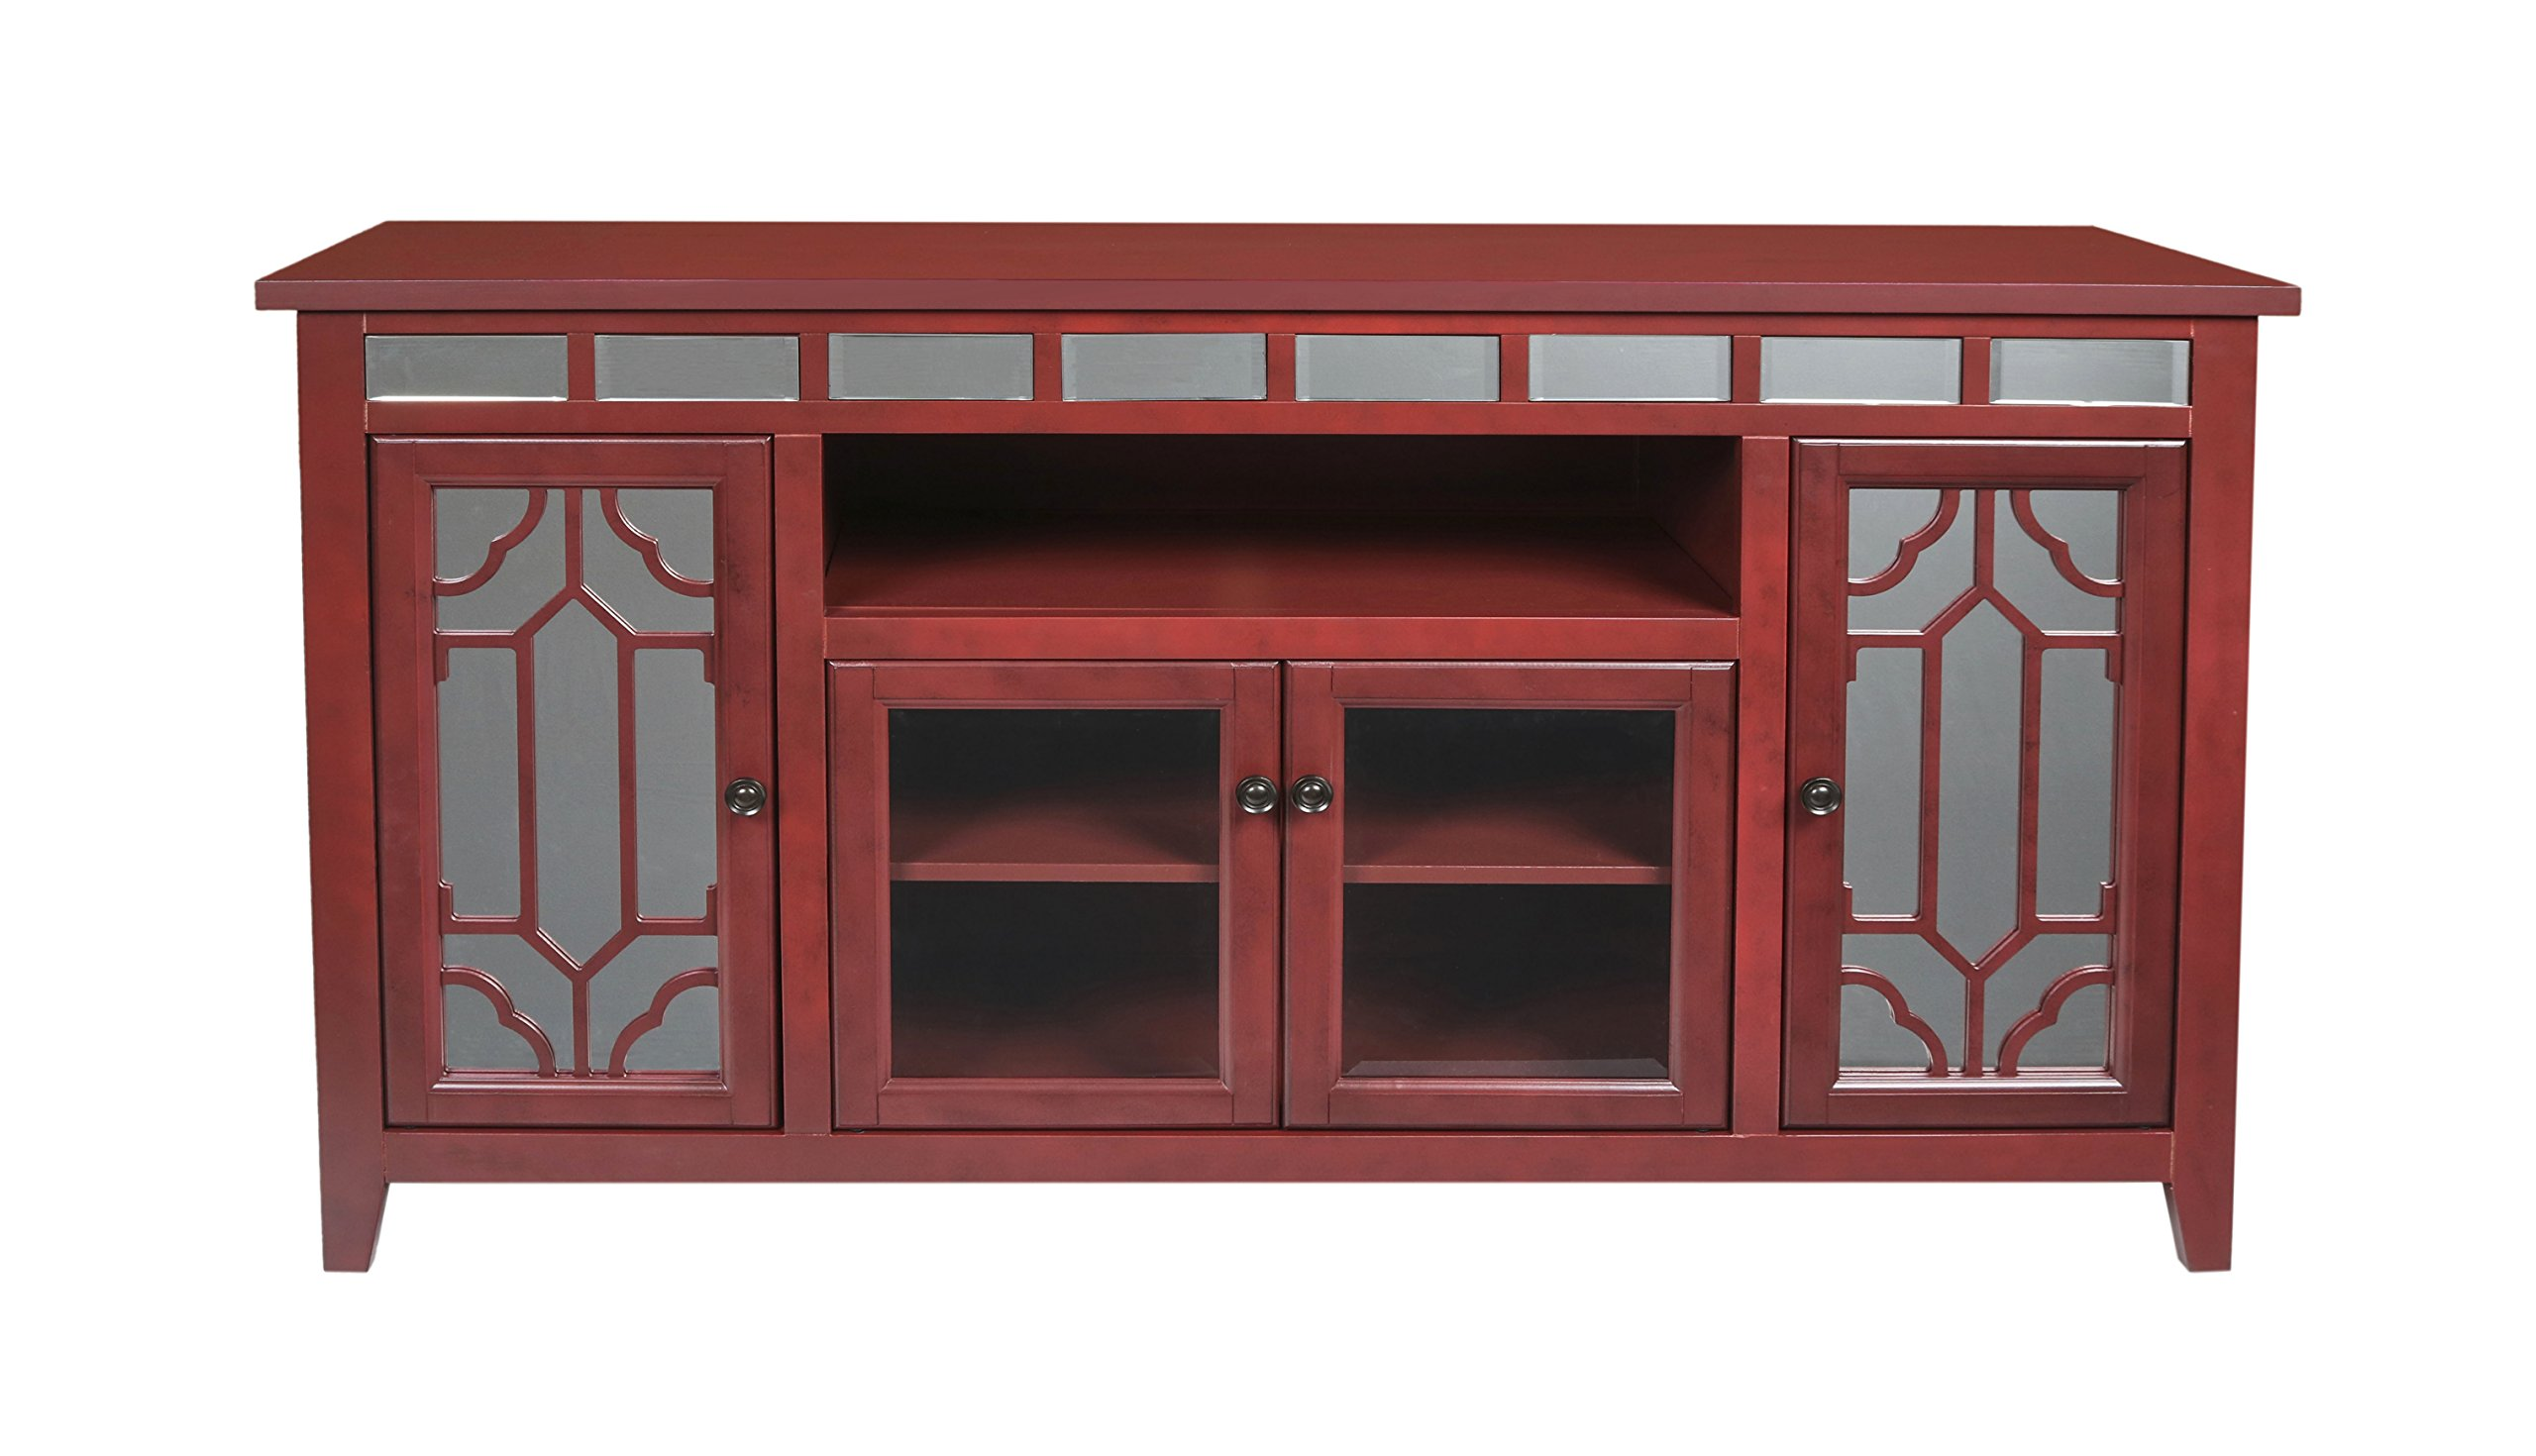 New Classic Furniture T1017-60-RED Gable Entertainment Unit, 60-inch, Red by New Classic Furniture